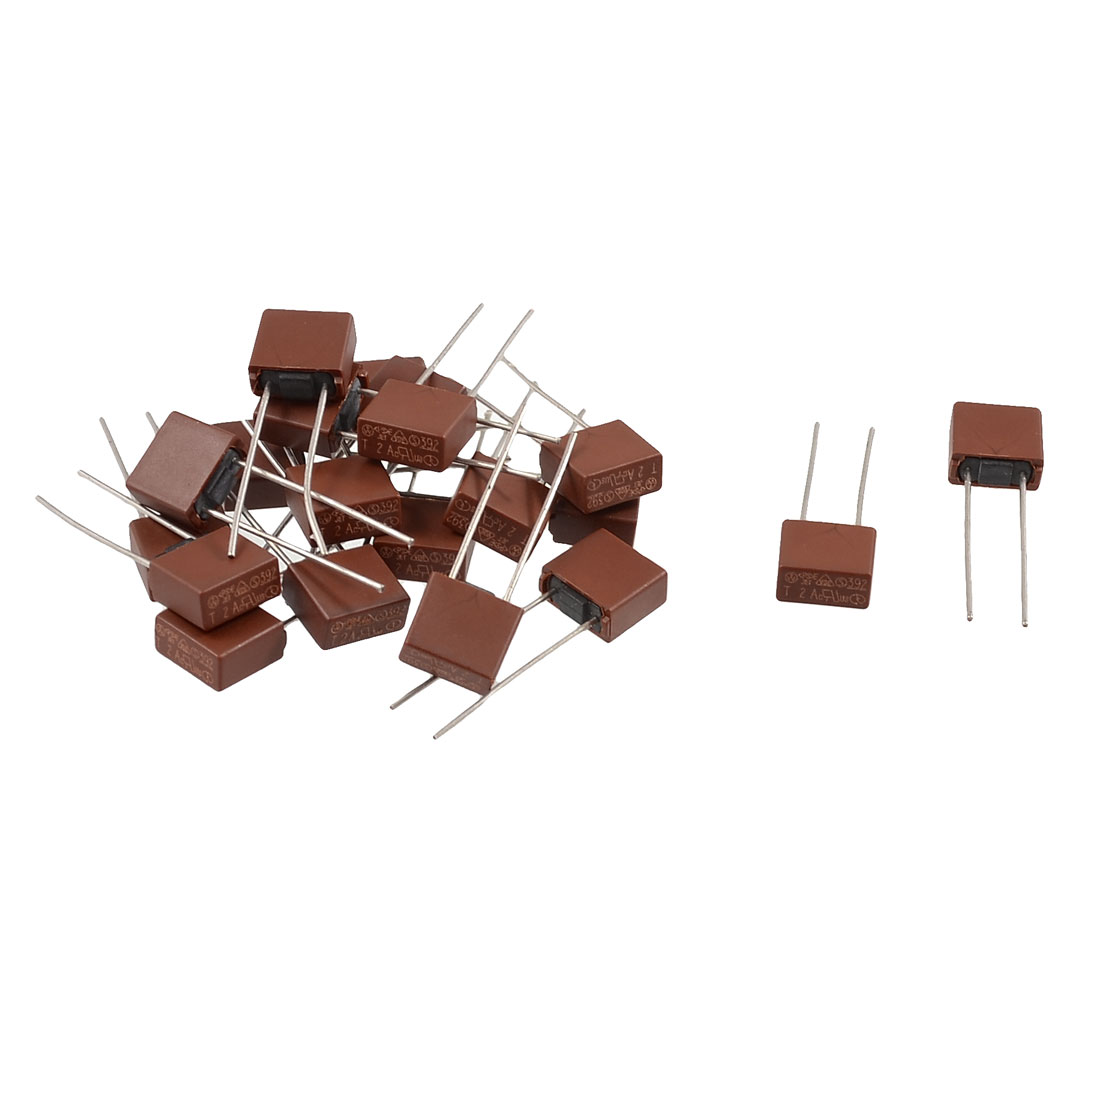 20 Pcs DIP Mounted Miniature Square Slow Blow Micro Fuse T4A 4A 250V